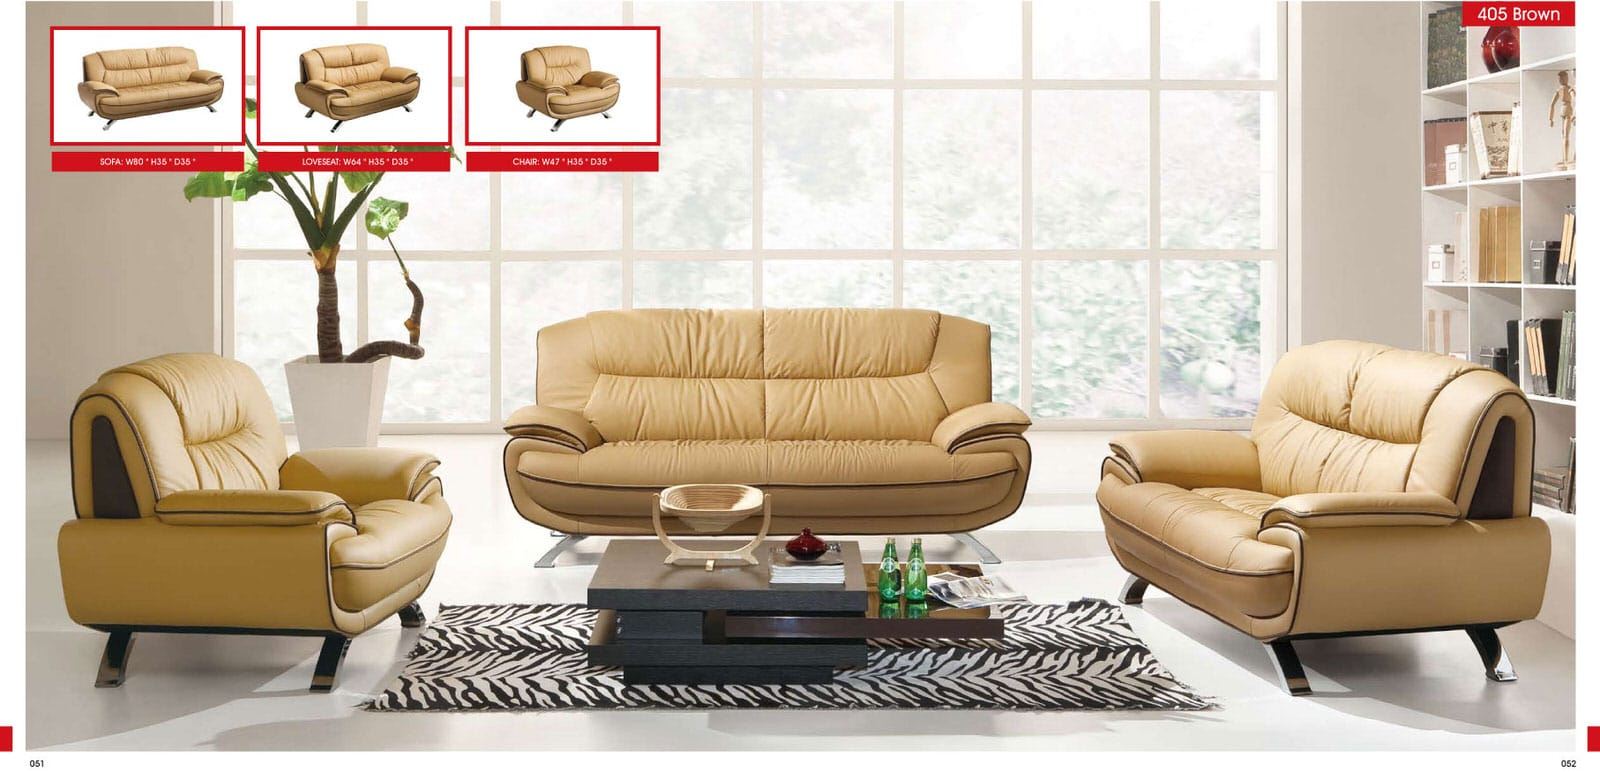 405 brown leather sofa set by esf. Black Bedroom Furniture Sets. Home Design Ideas